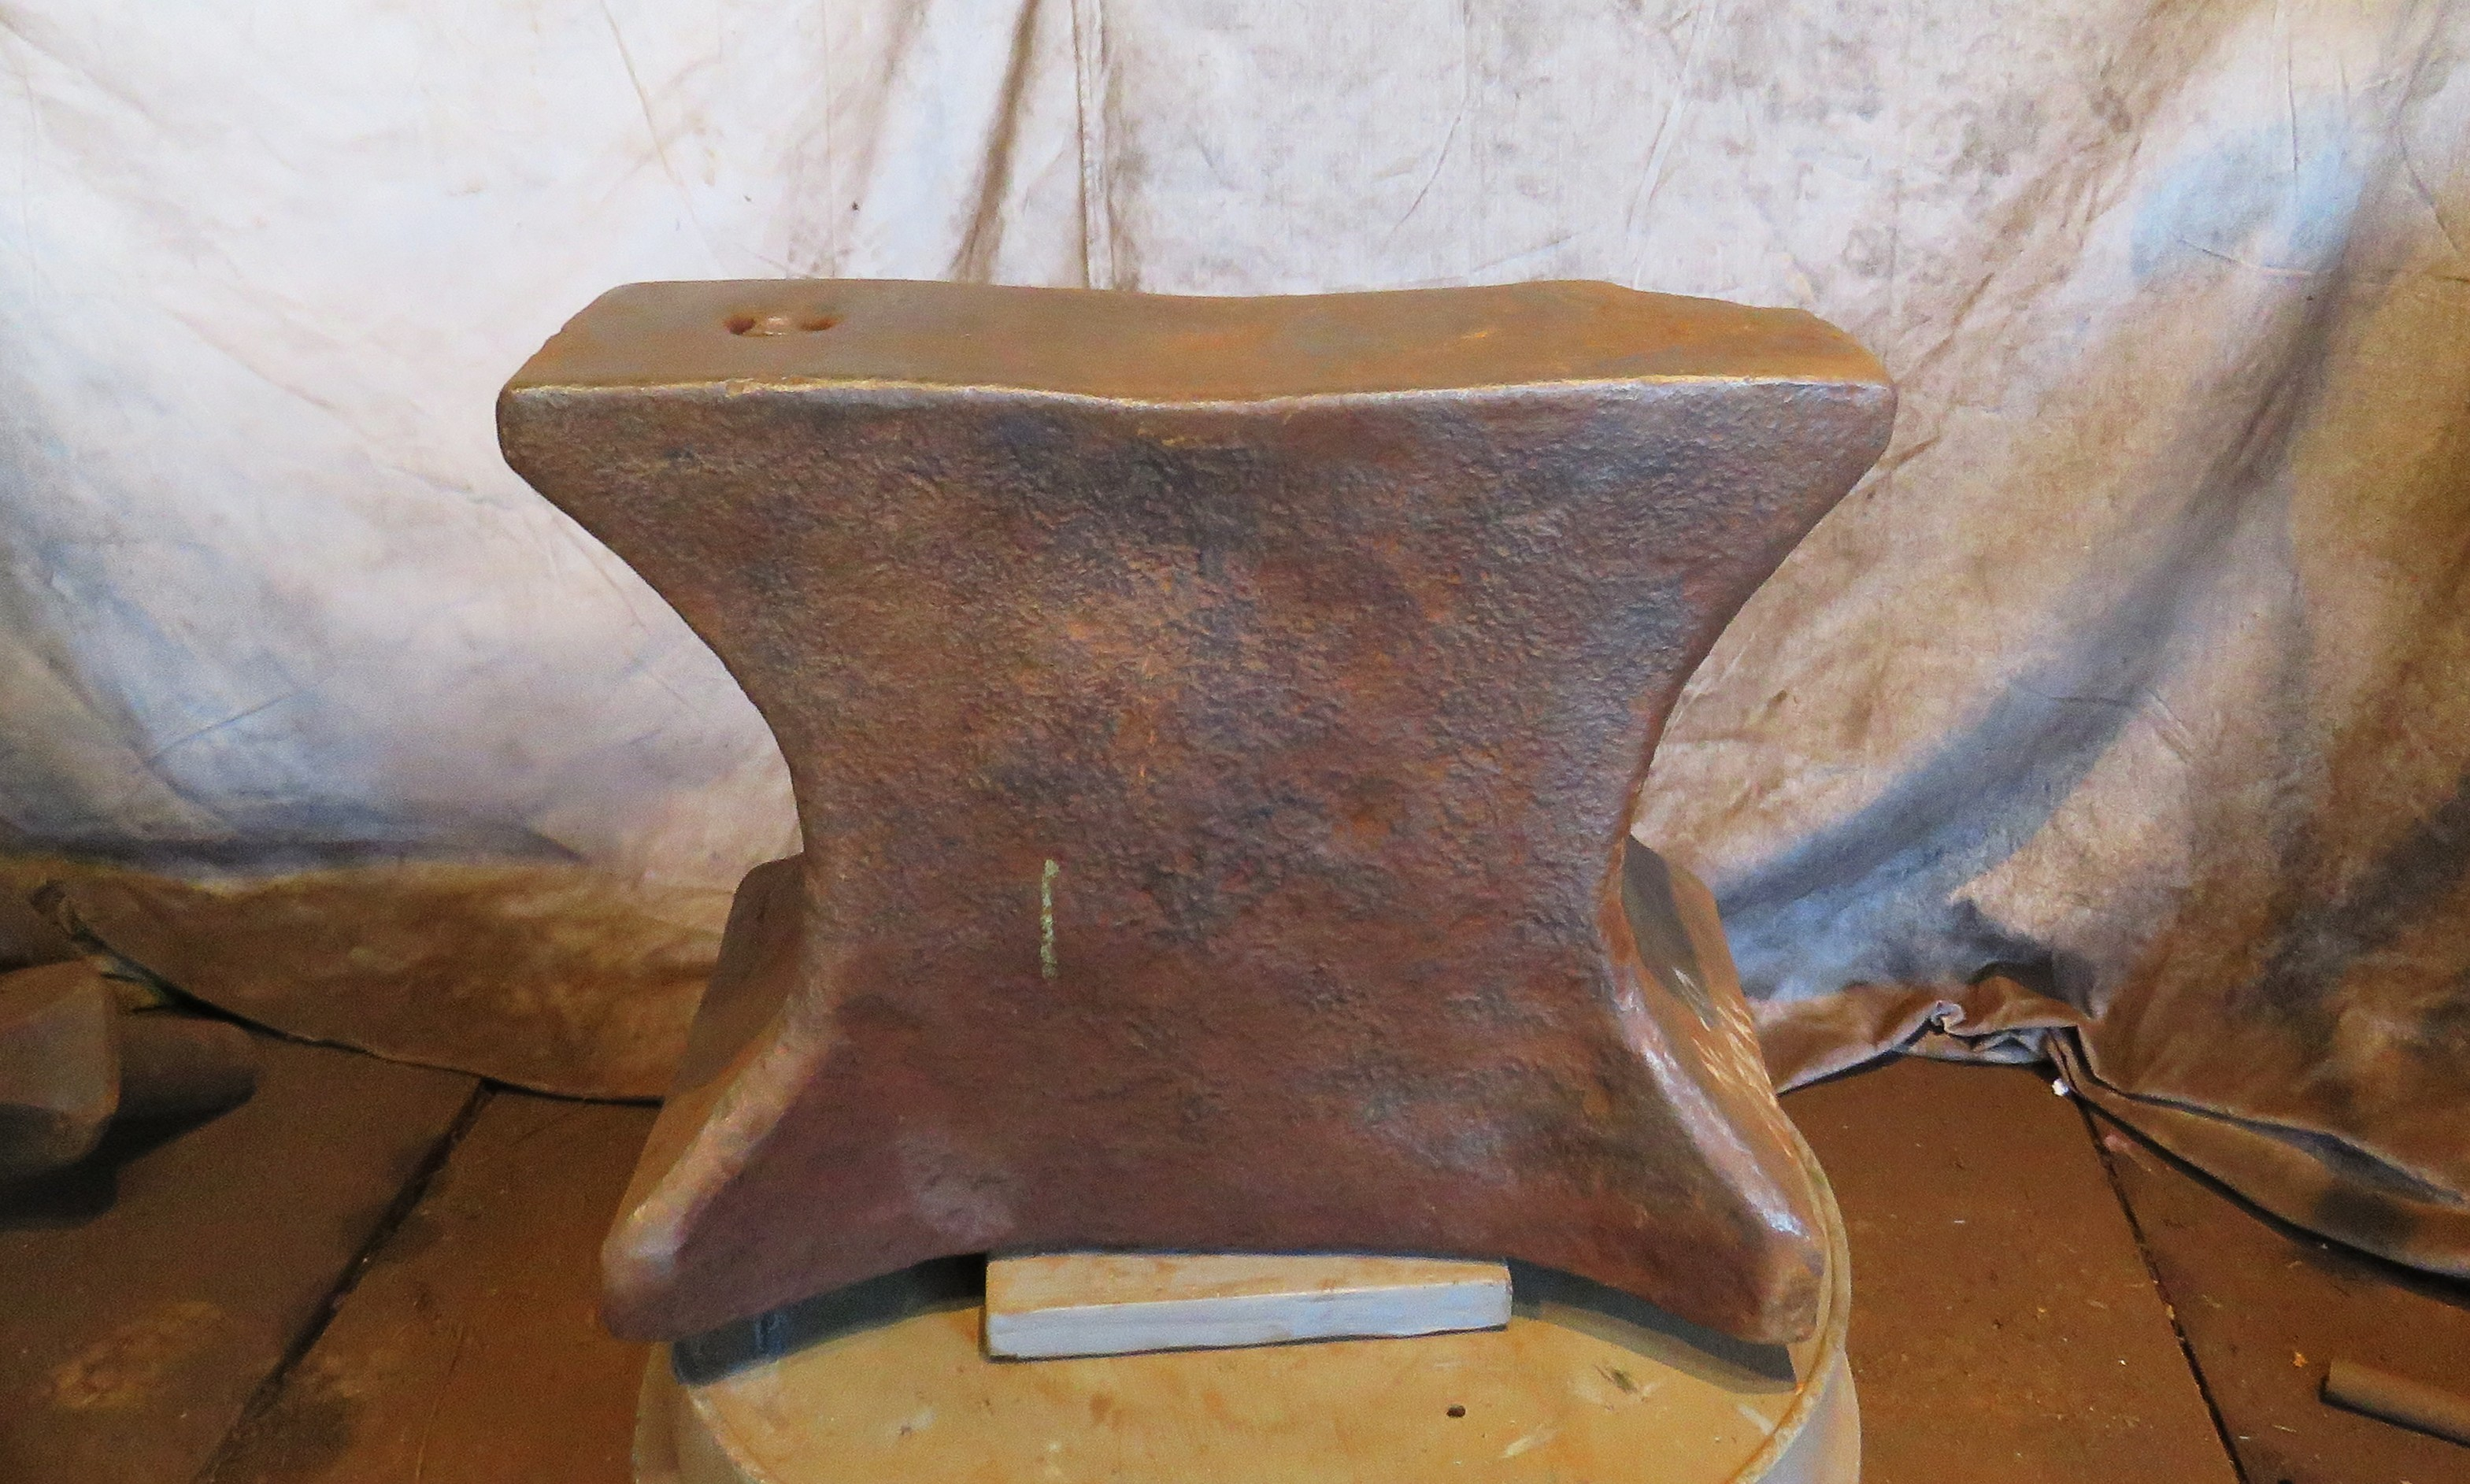 413 lb classic Church Windows anvil for sale - mid 19th century, showing almost 2 centuries of wear and tear